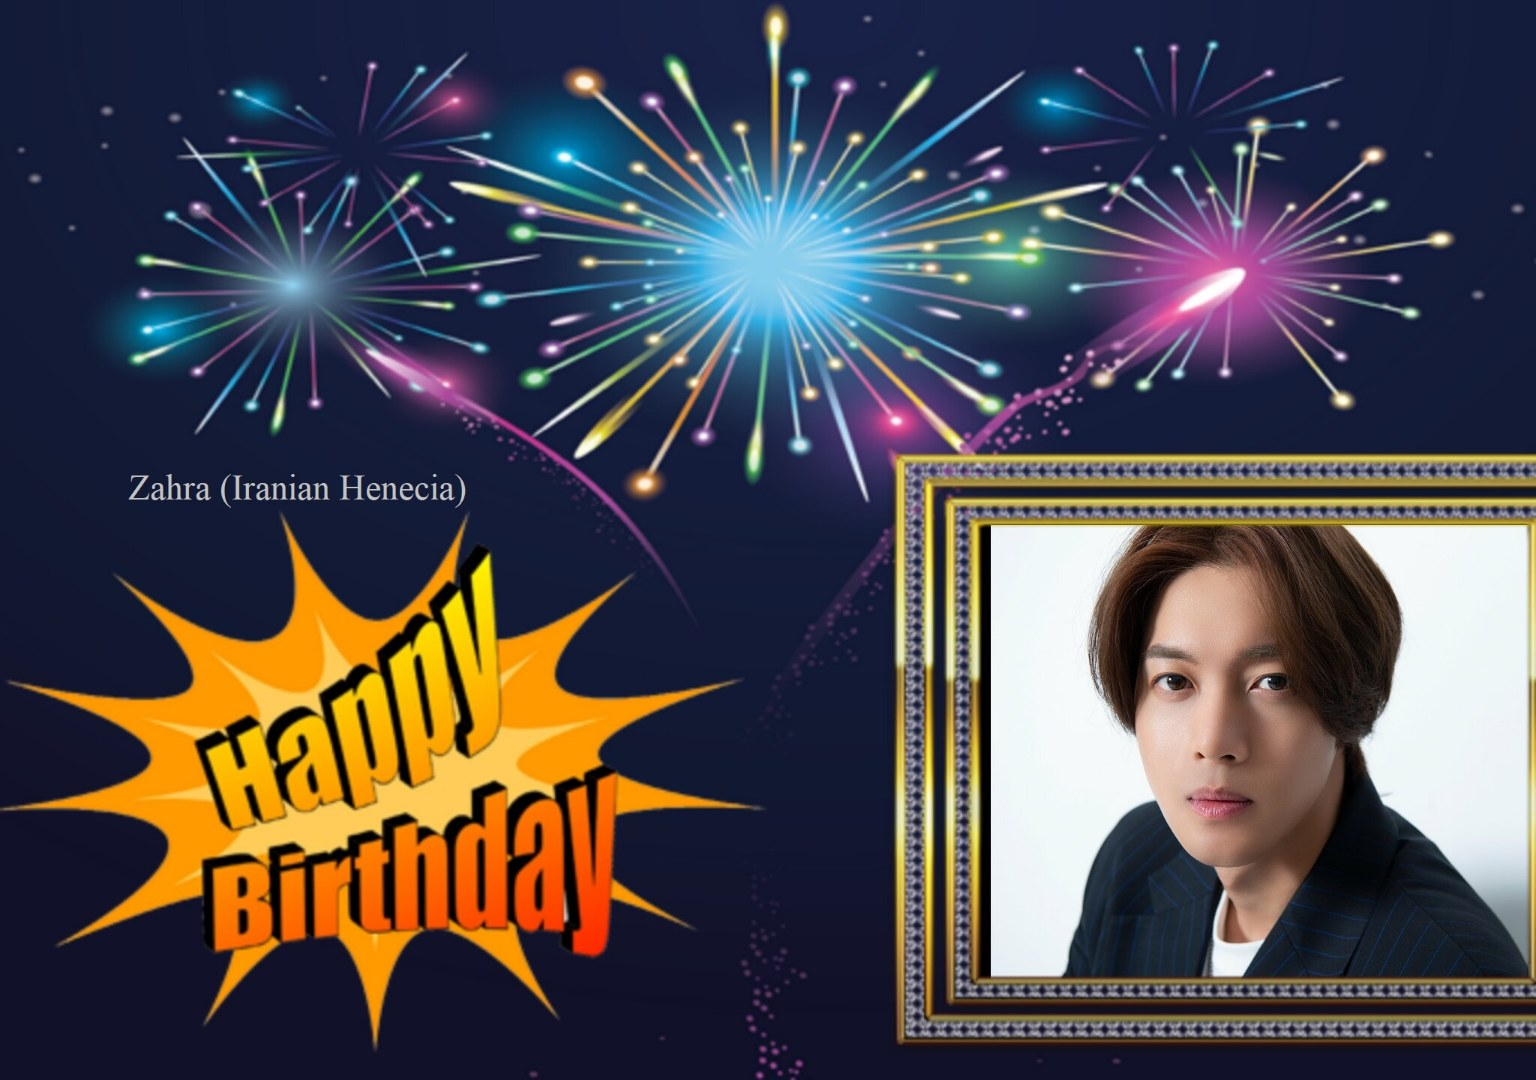 (My Fanart from Happy 32th Birtday of KHJ (18